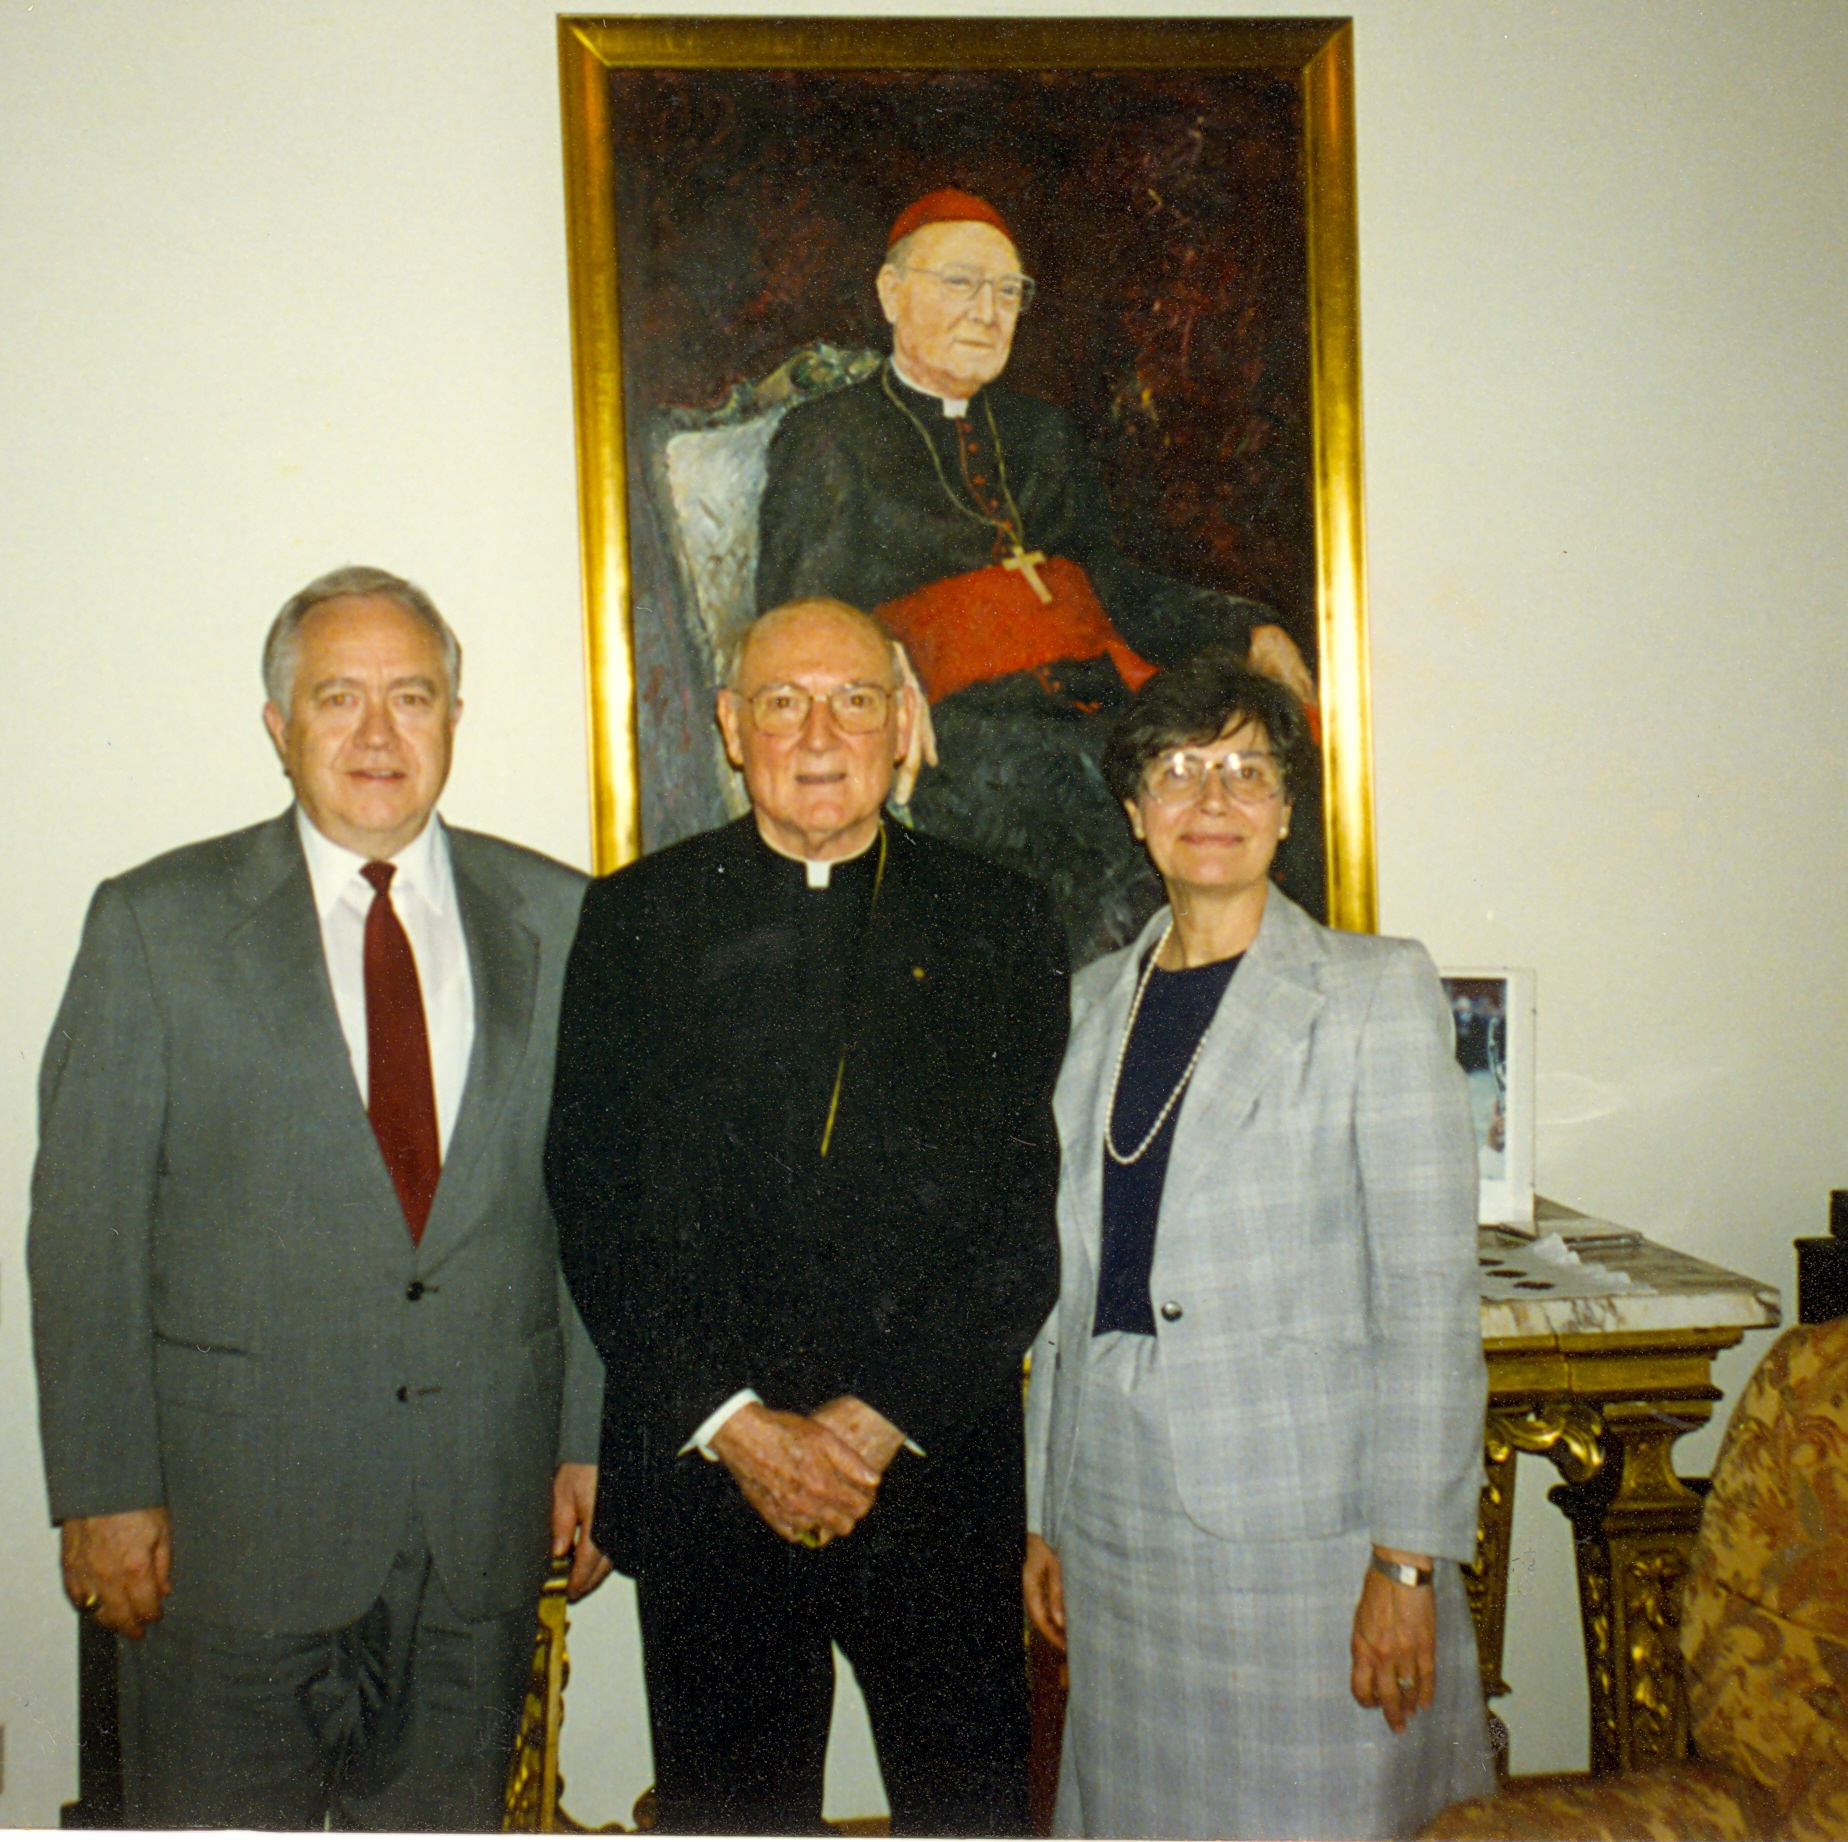 Elder V. Dallas Merrell left, and his wife, Karen, with Cardinal Edward Idris Cassidy, on the occasion of their first meeting at the Vatican in 1995. Elder Merrill's friendship with Cardinal Cassidy bore fruit in goodwill and improved relationships between the Catholic church and The Church of Jesus Christ of Latter-day Saints.